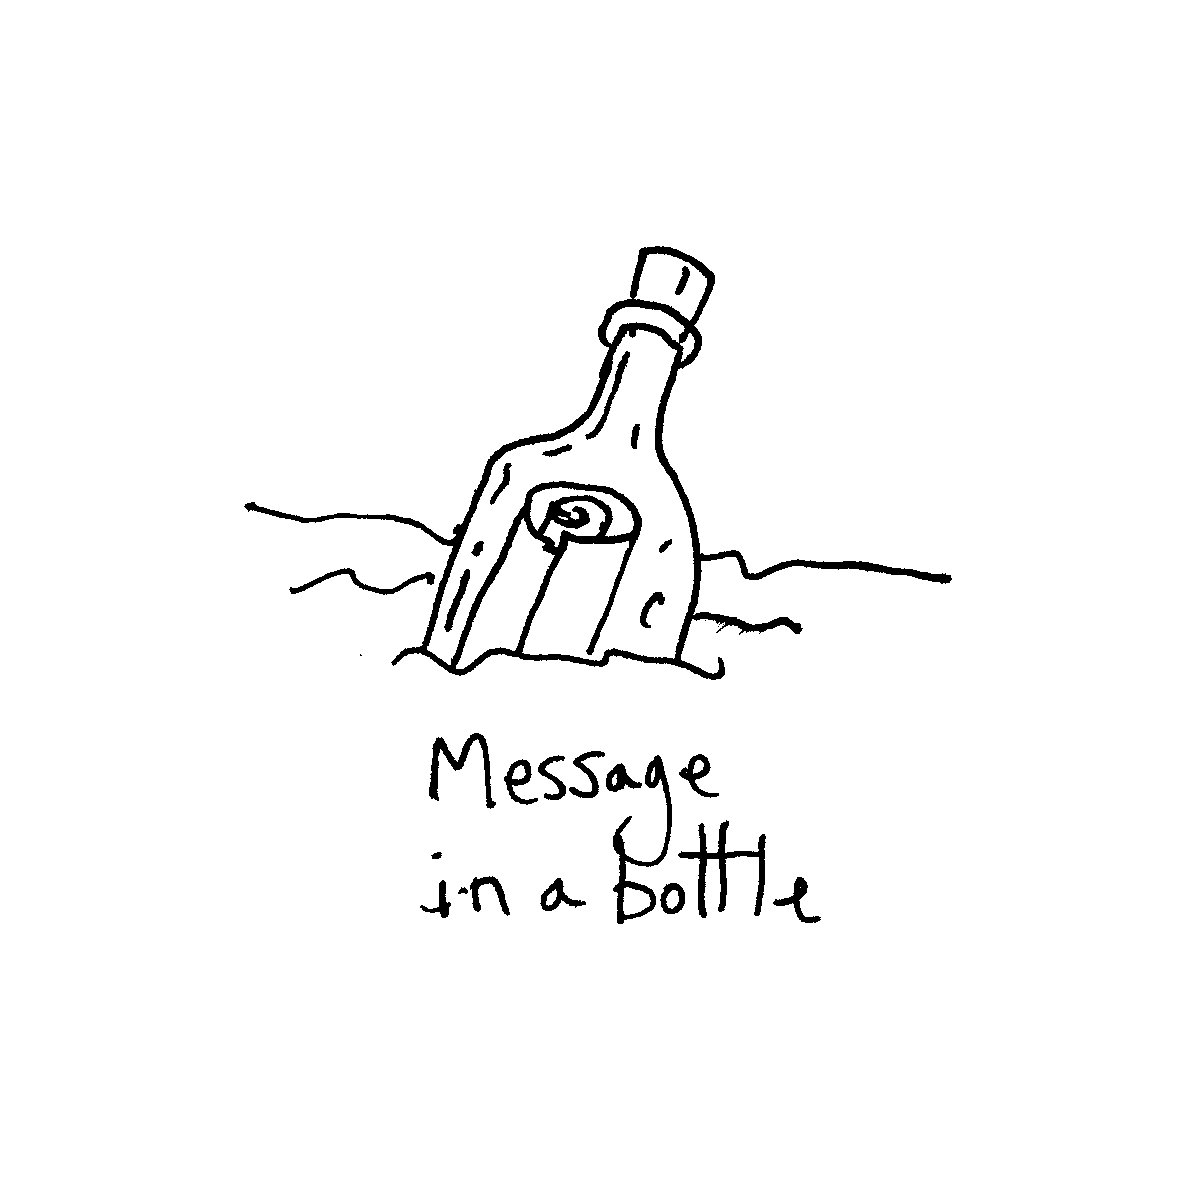 message in a bottle cartoon doodle